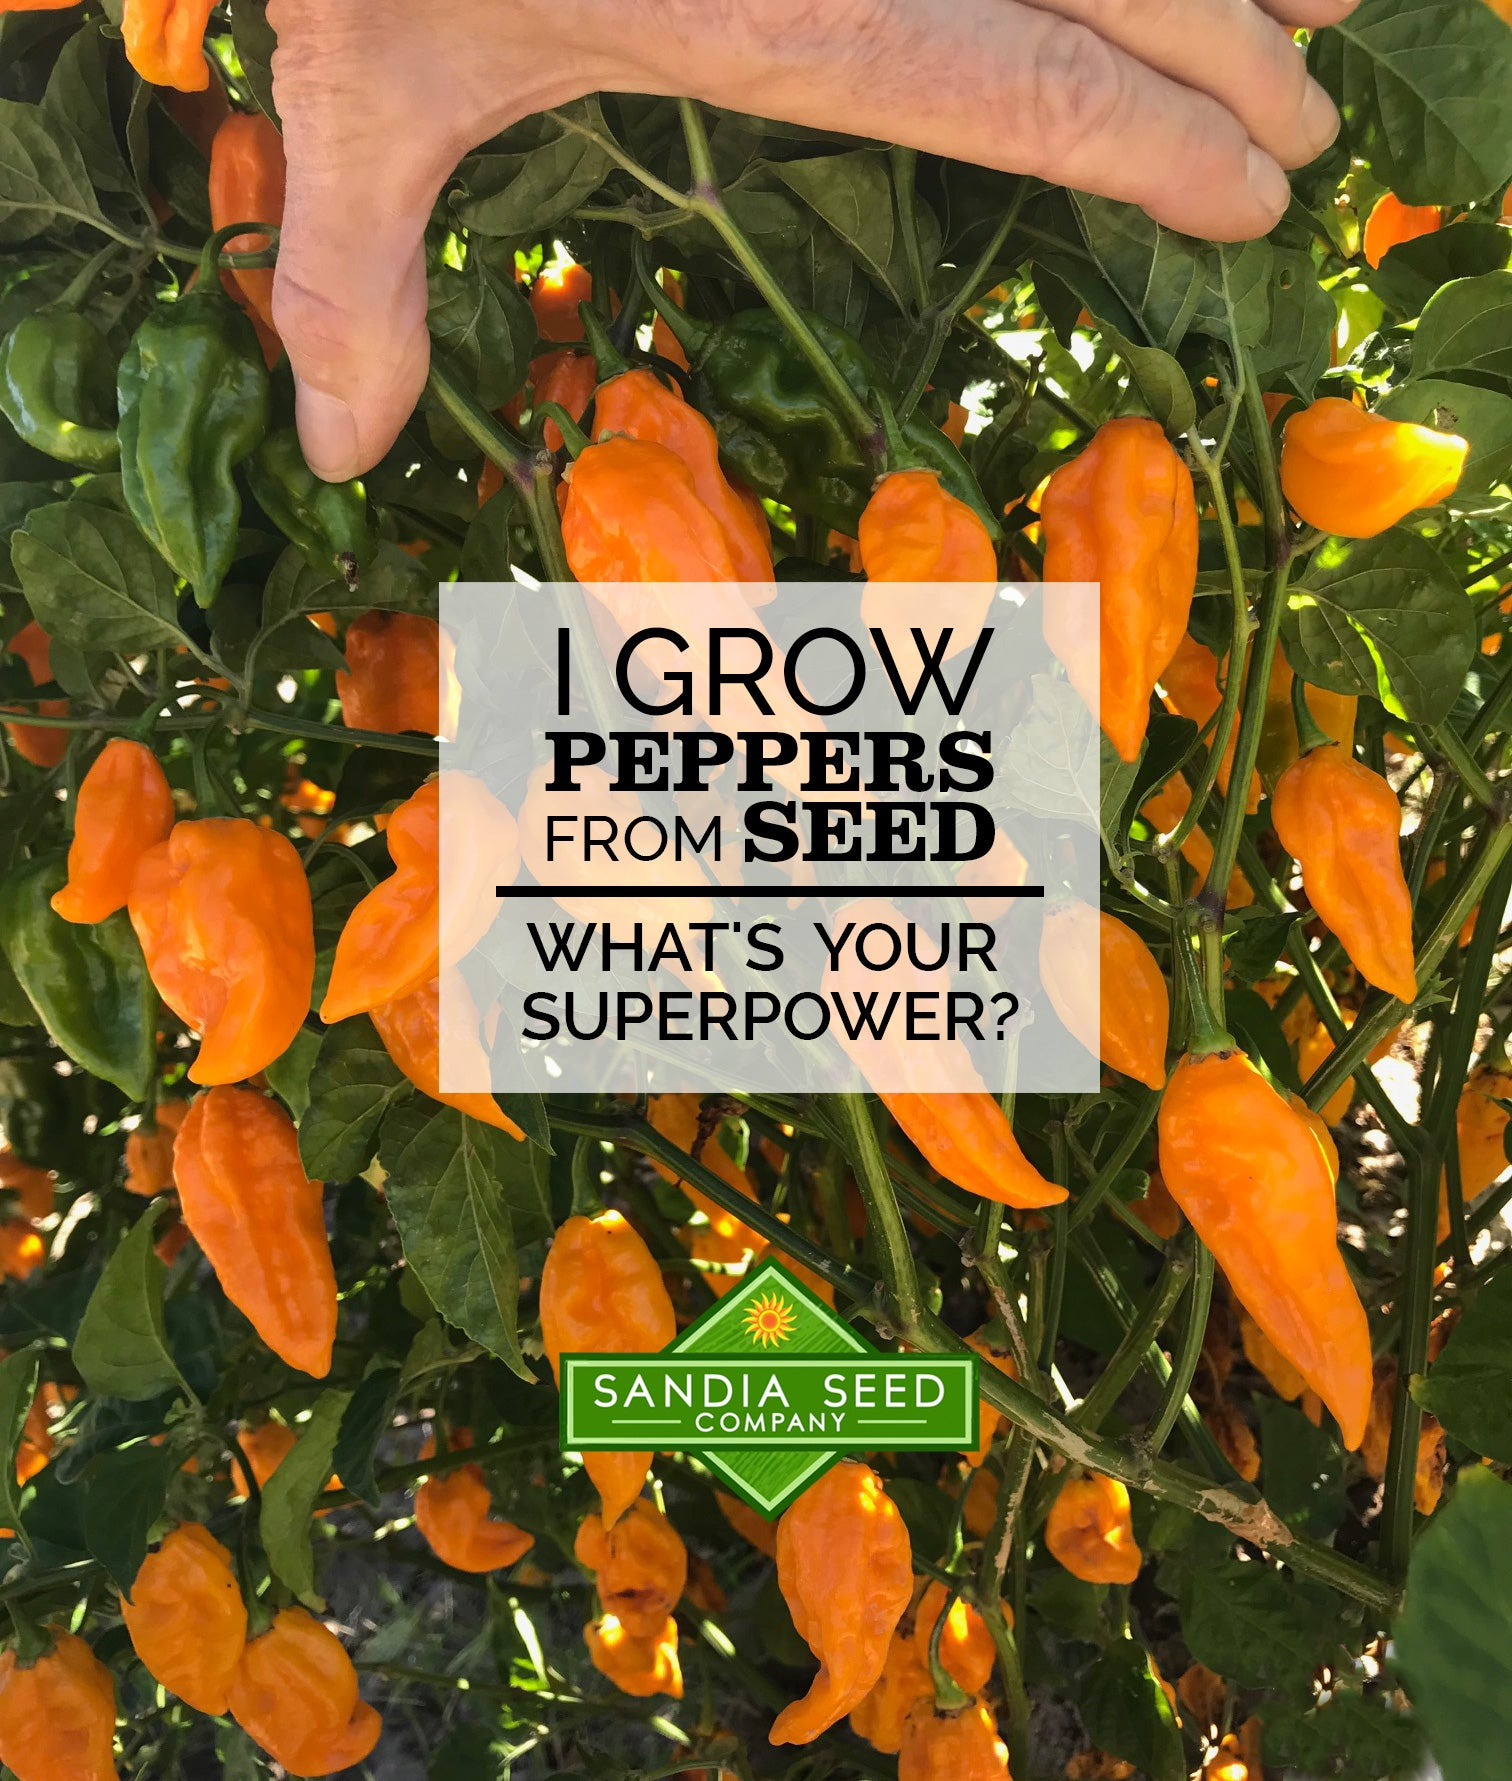 Gardening Quote: I Grow Peppers from Seed. What's your Superpower?